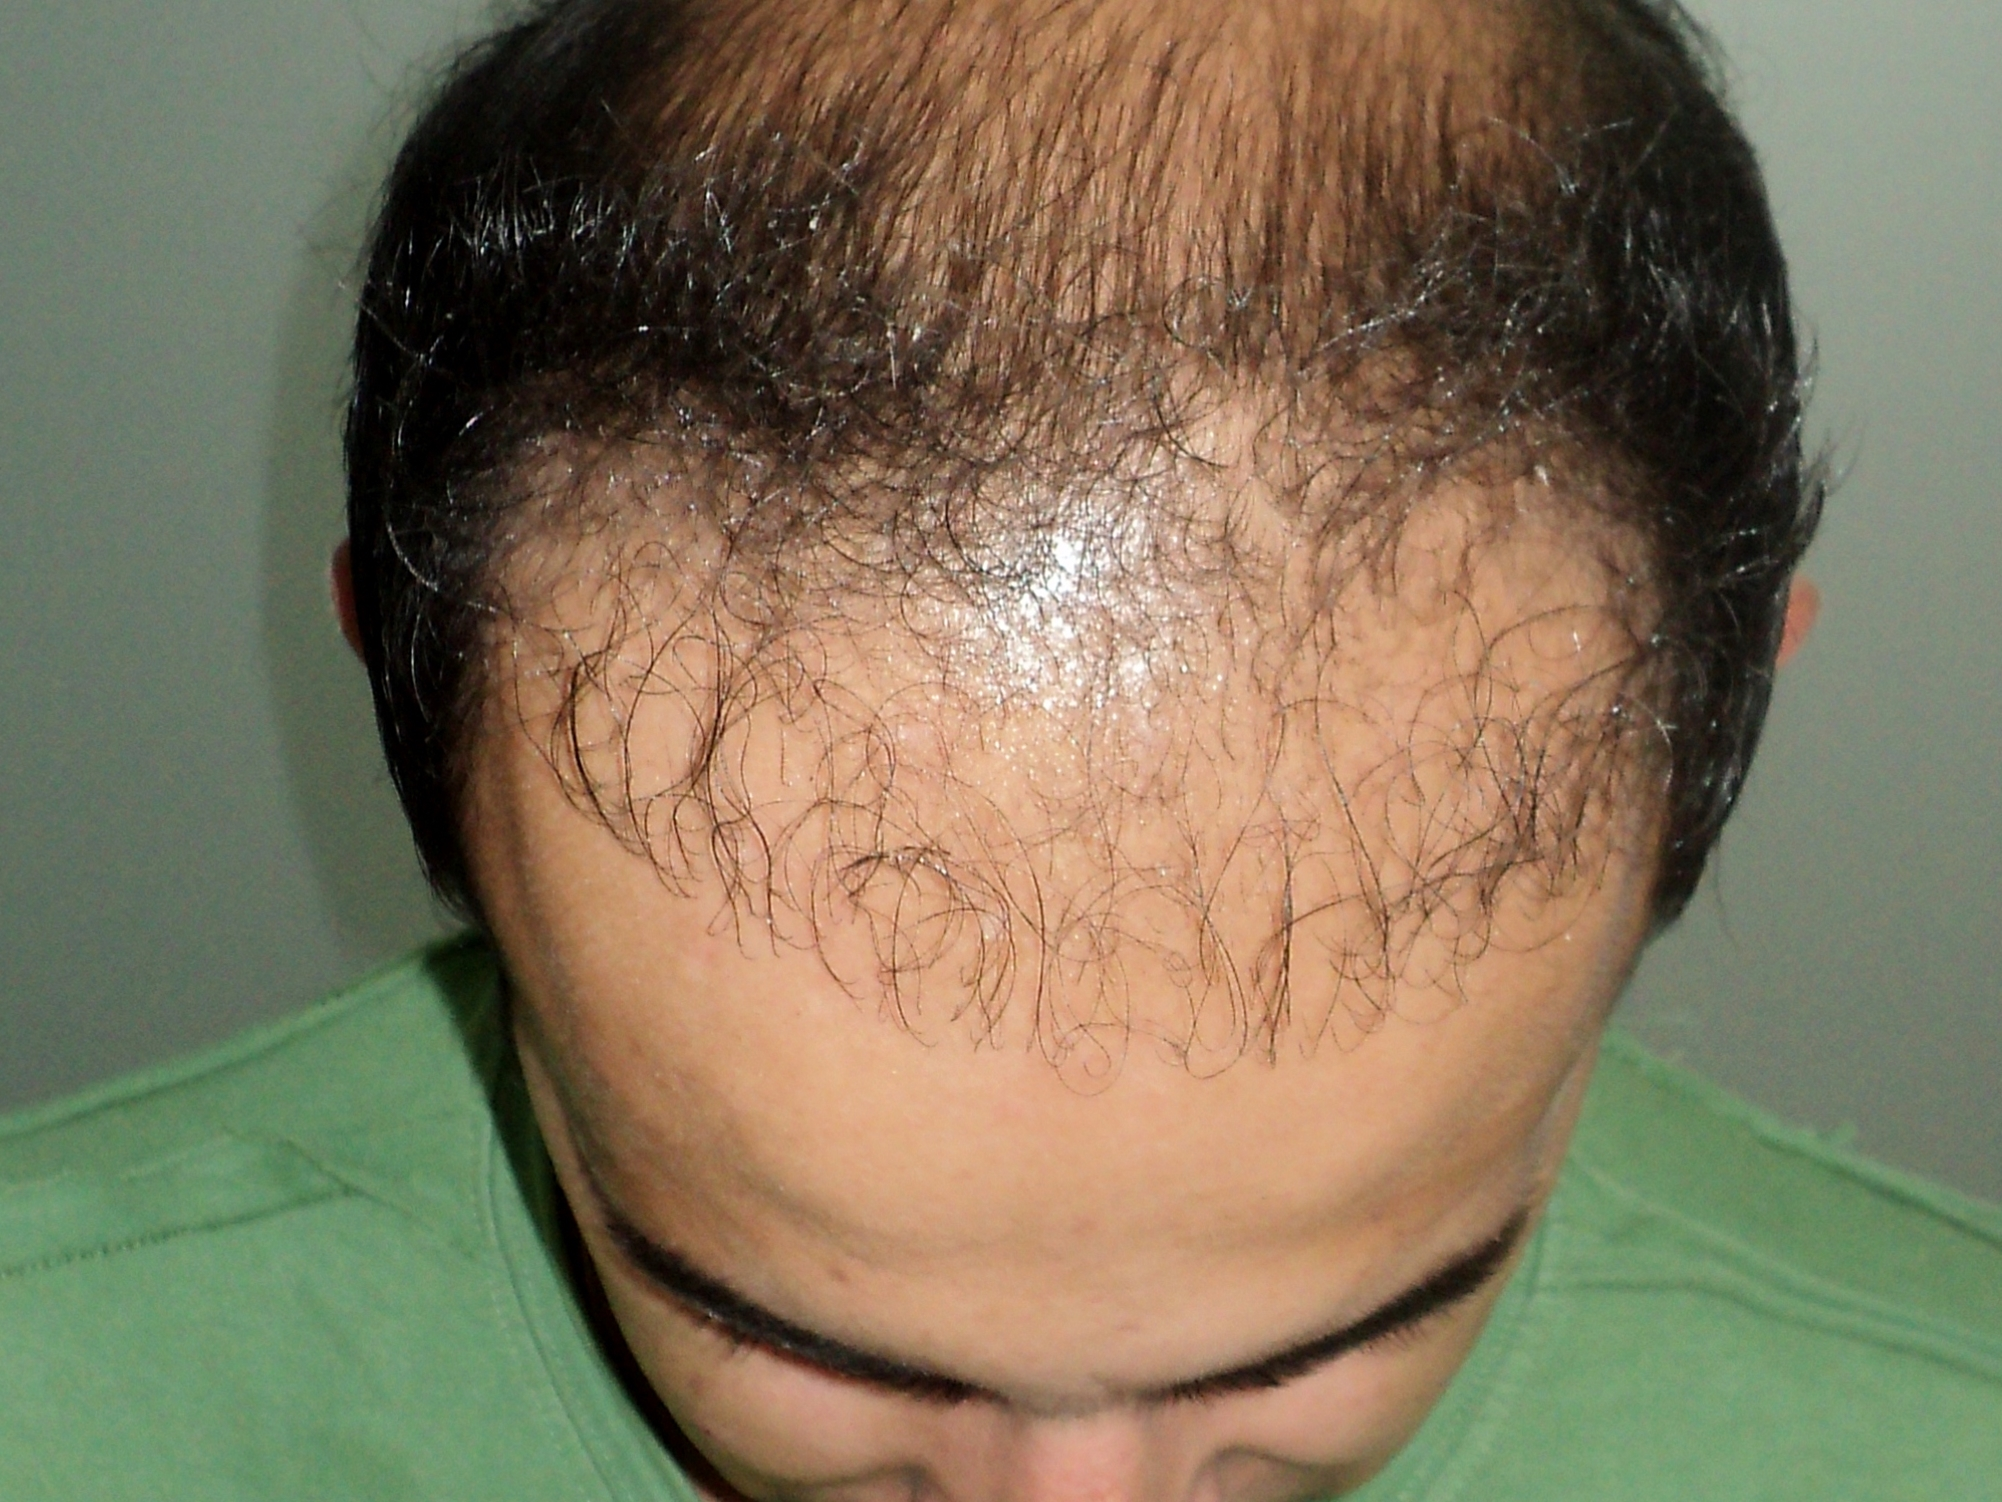 hair transplant and hairline design mistakes